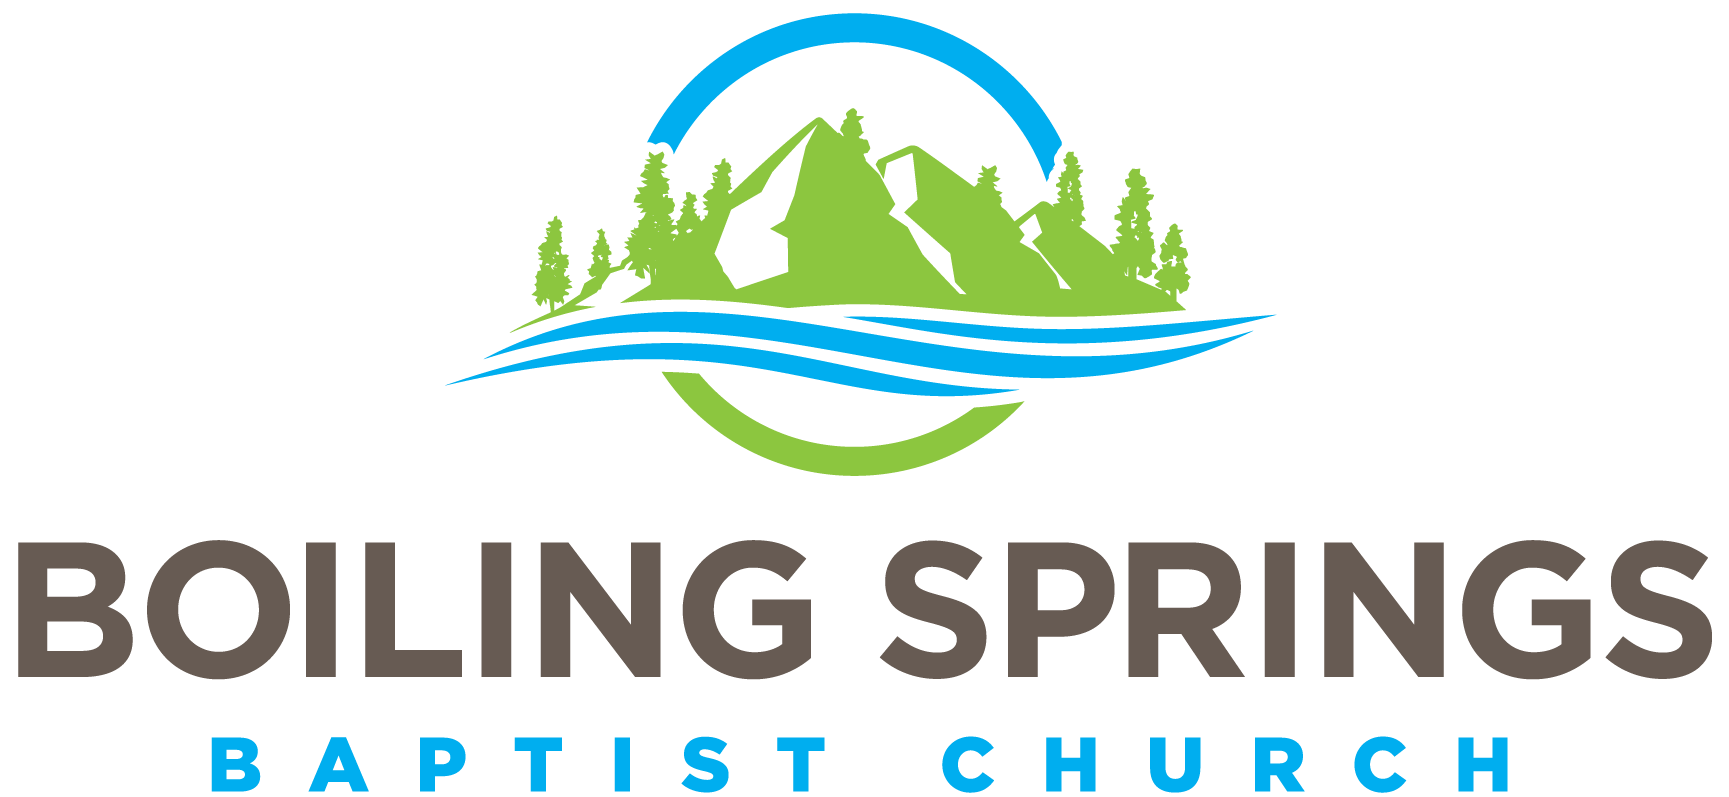 Boiling Springs BC LOGO 1906-17_block-01 cropped